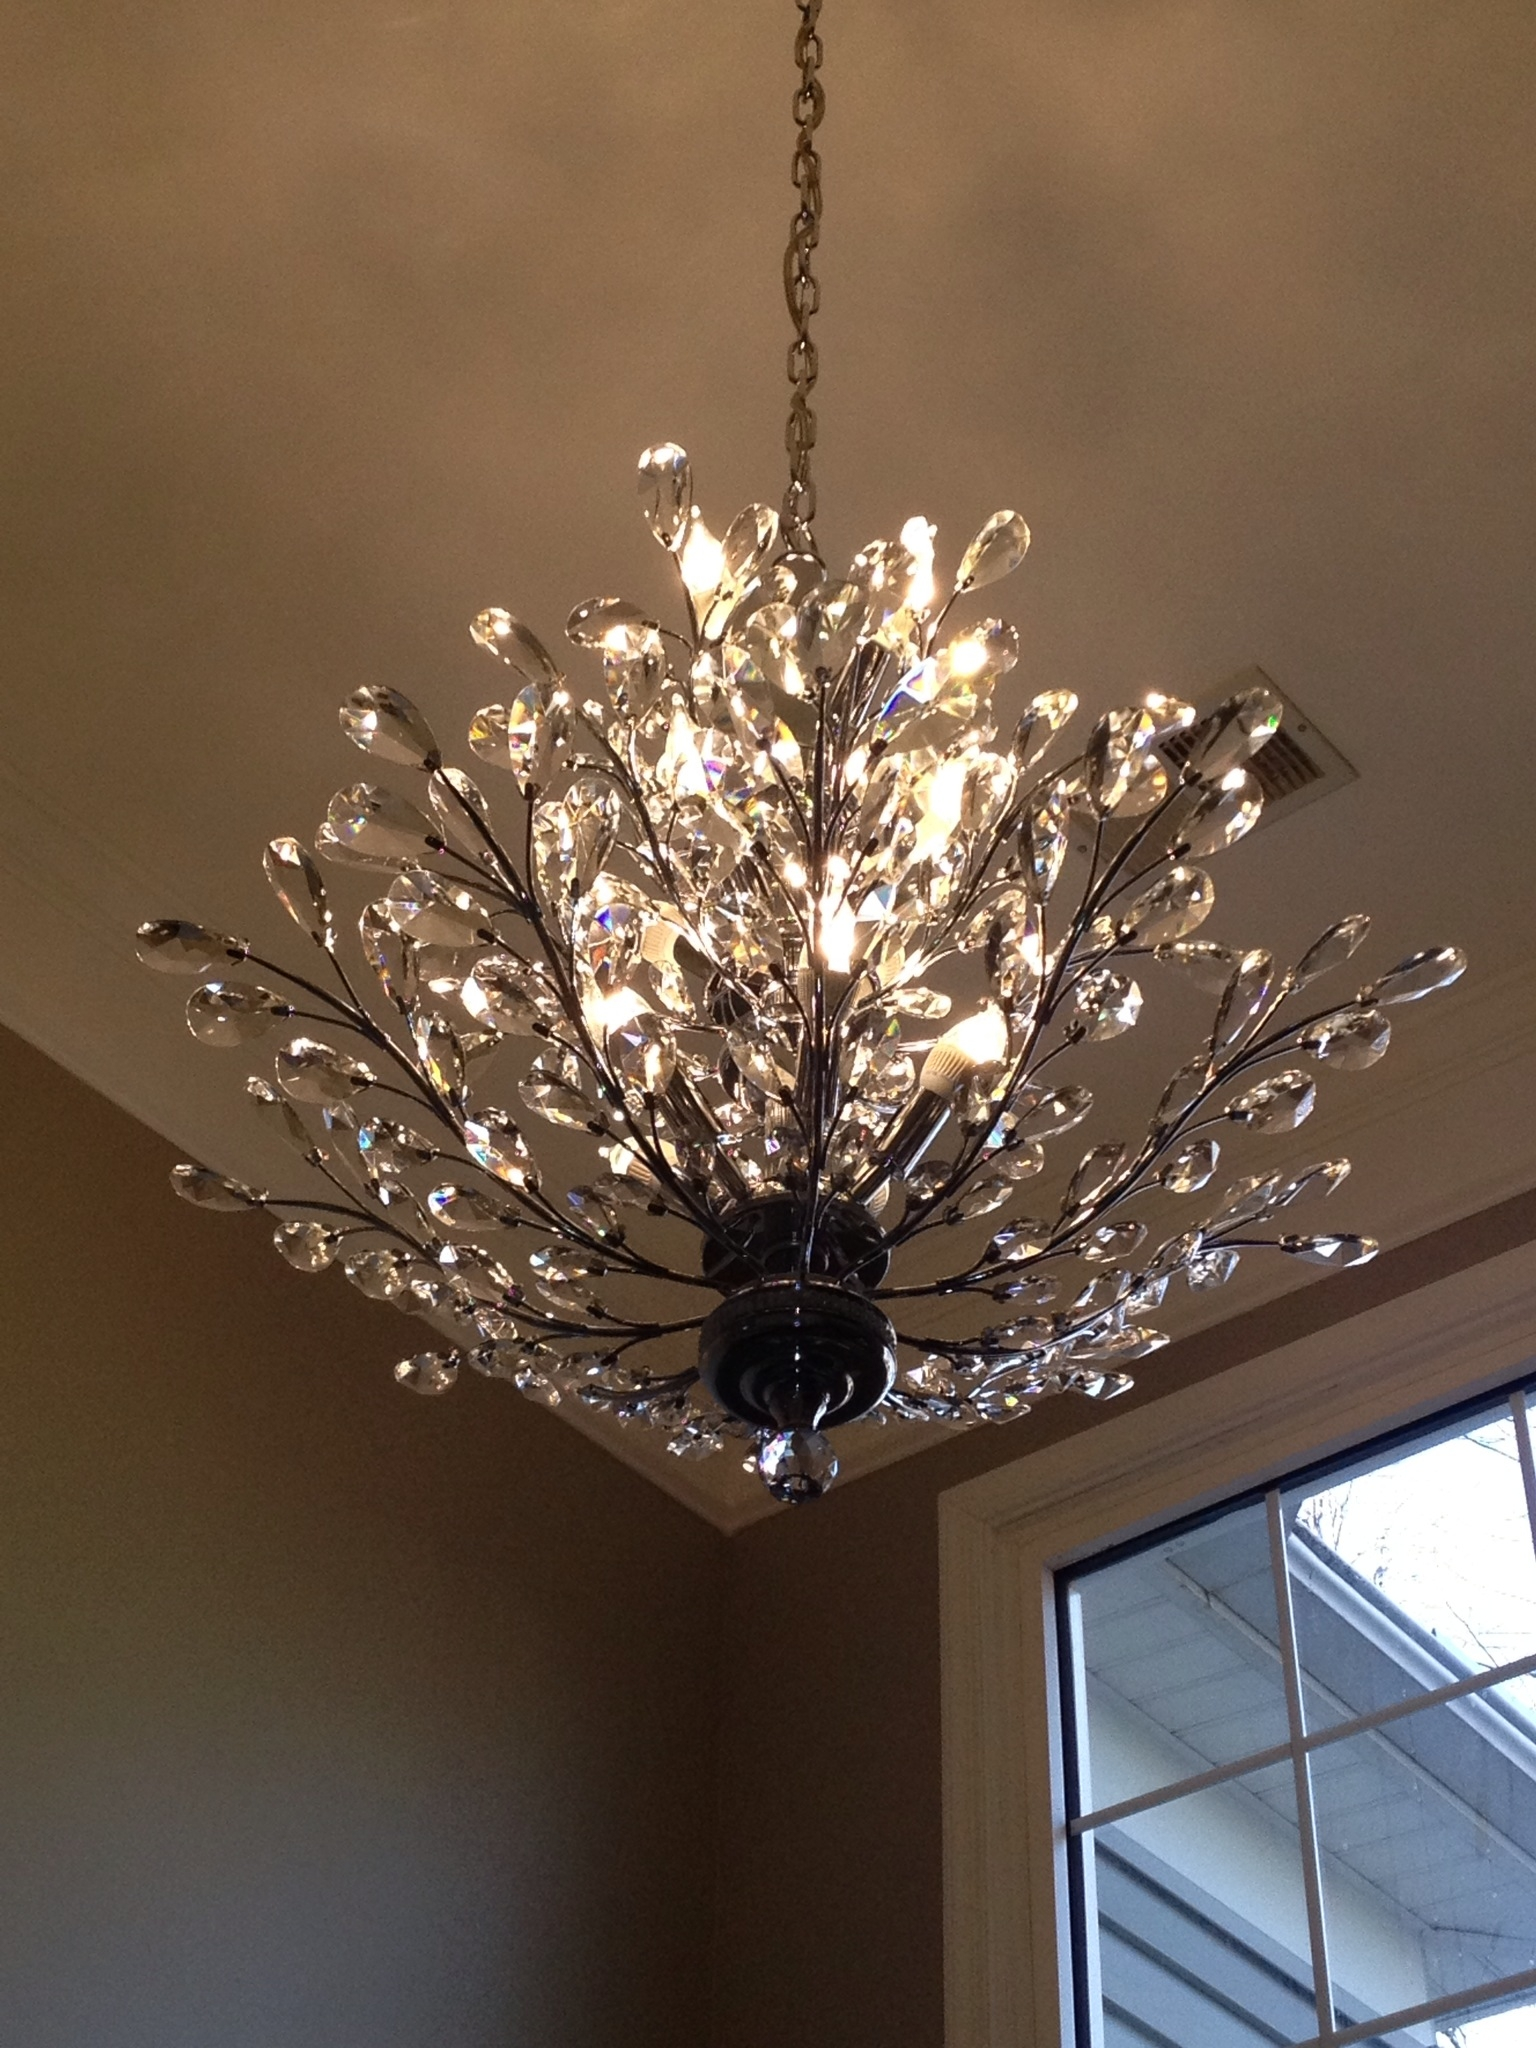 Foyer Chandelier Branch Of Light Design Joshua Marshall Home Throughout Crystal Branch Chandelier (Image 7 of 15)